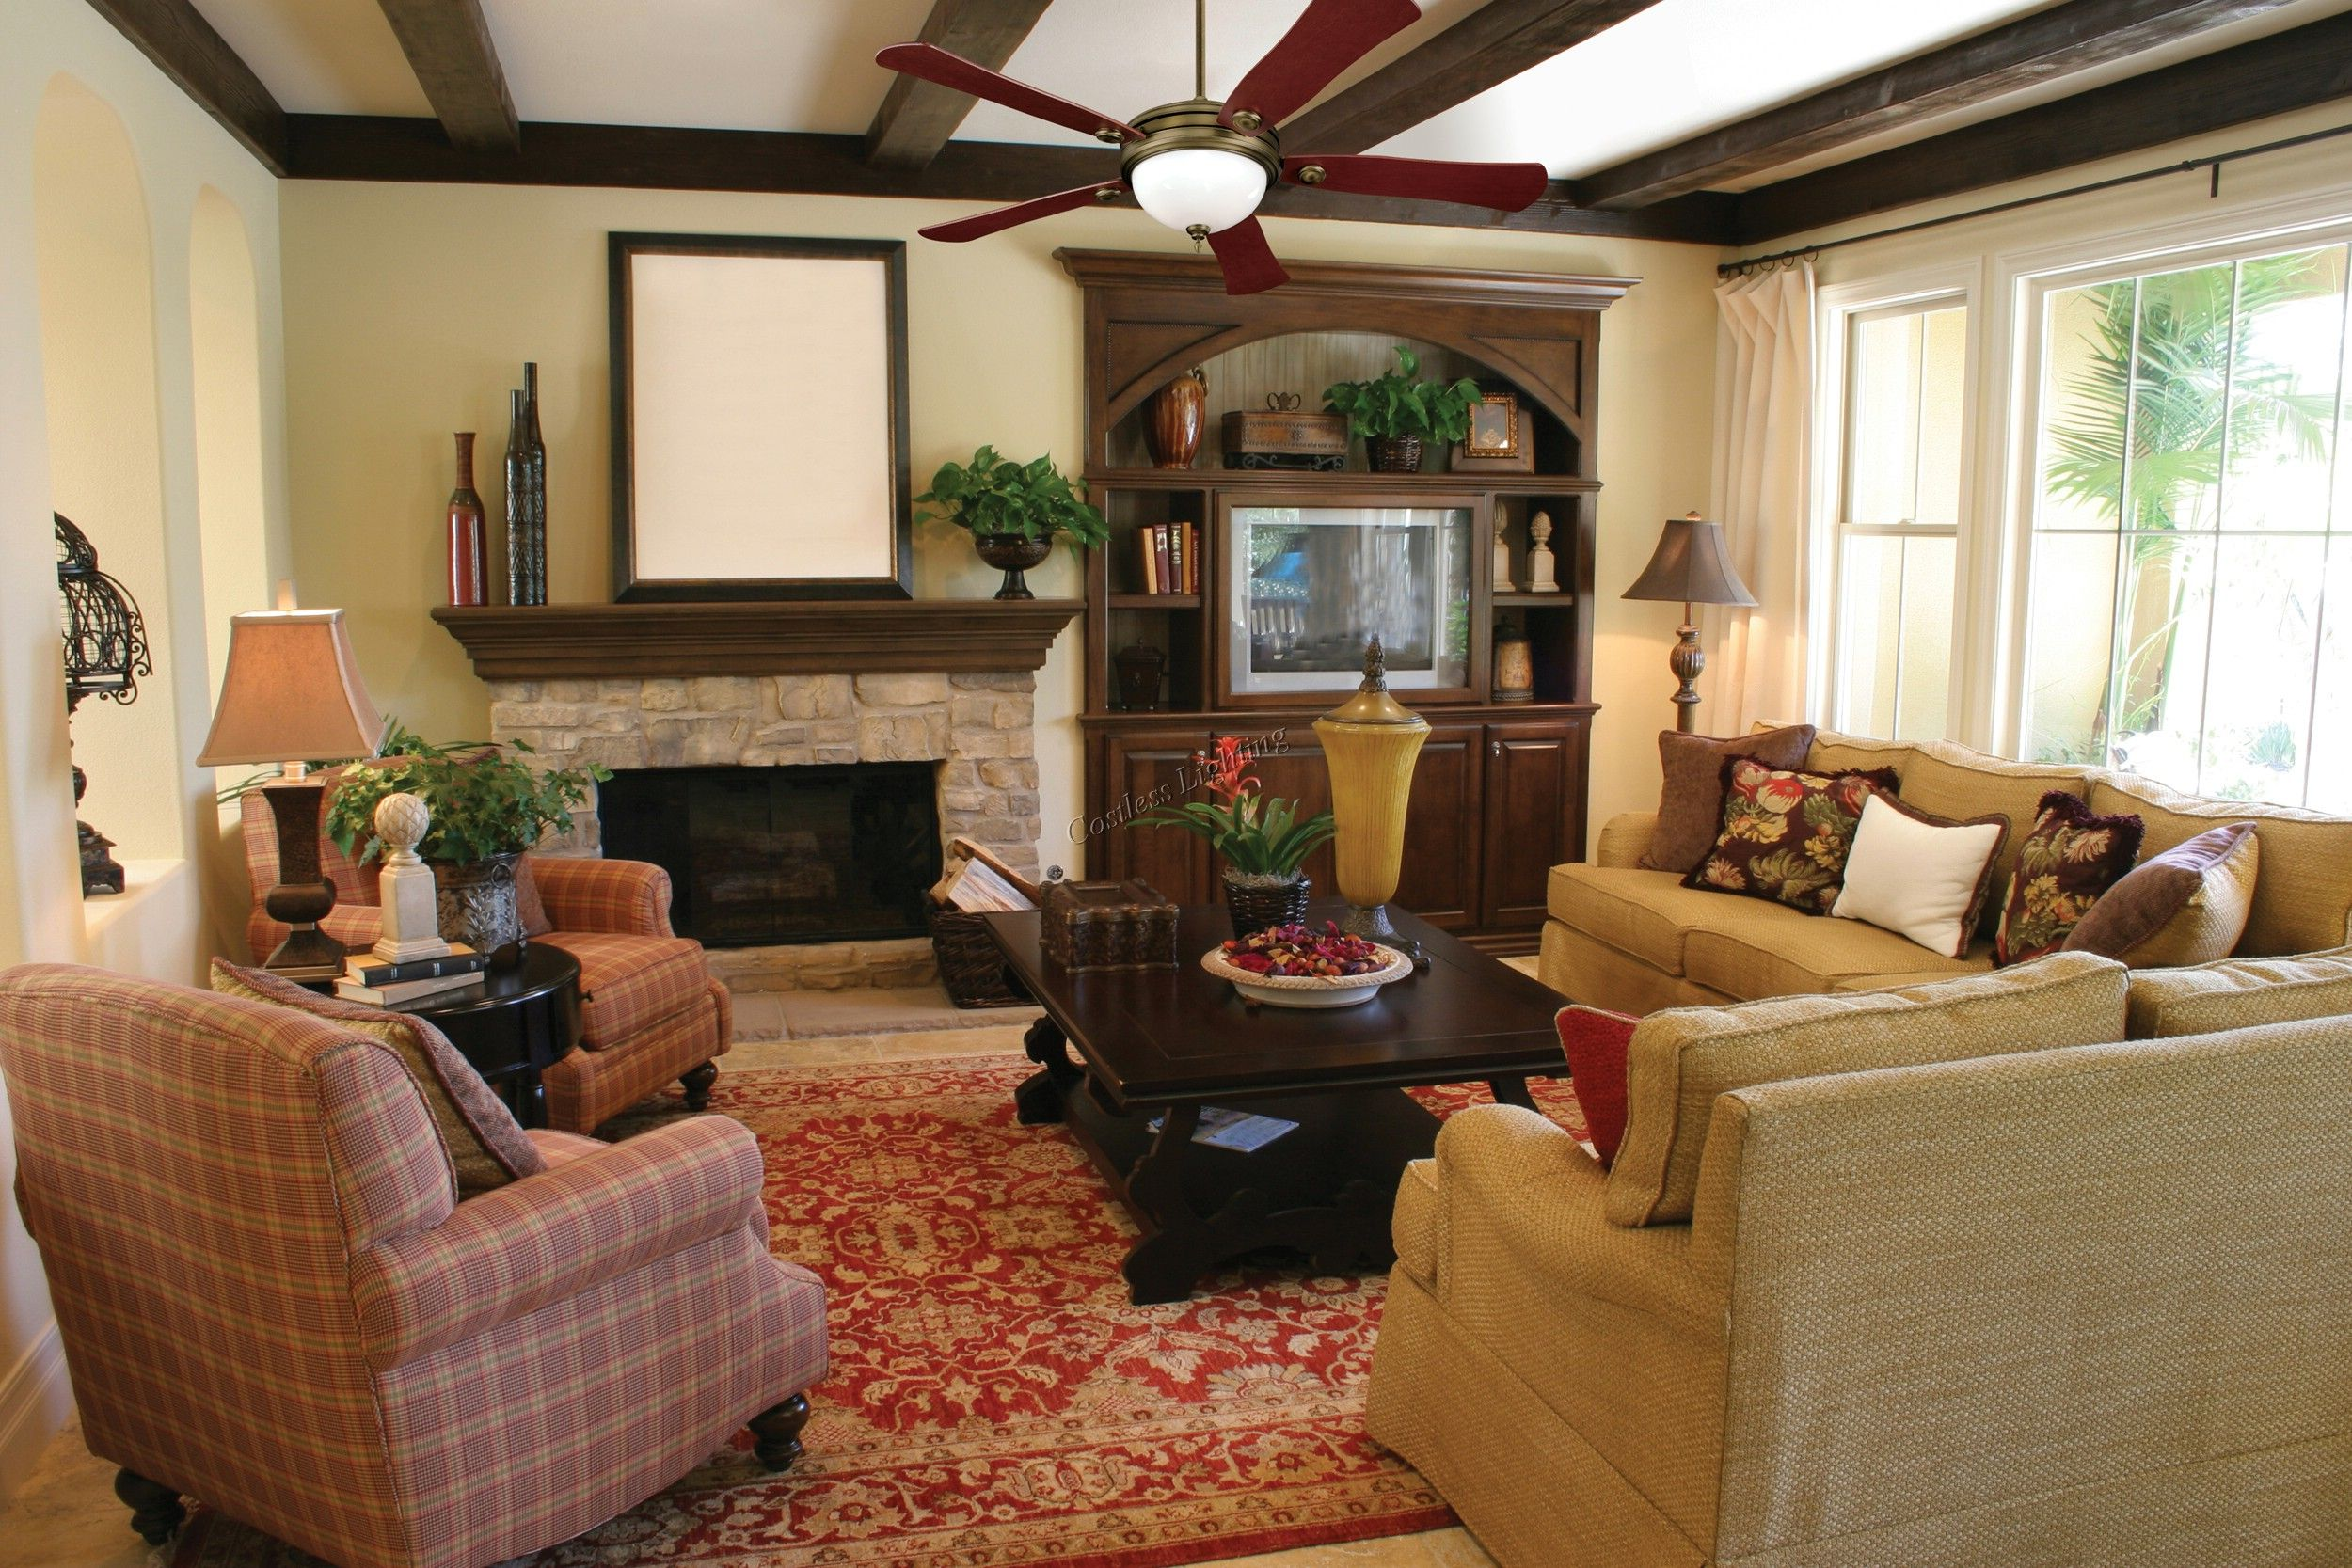 image result for furniture setup for rectangular living room on family picture wall ideas for living room furniture arrangements id=34182